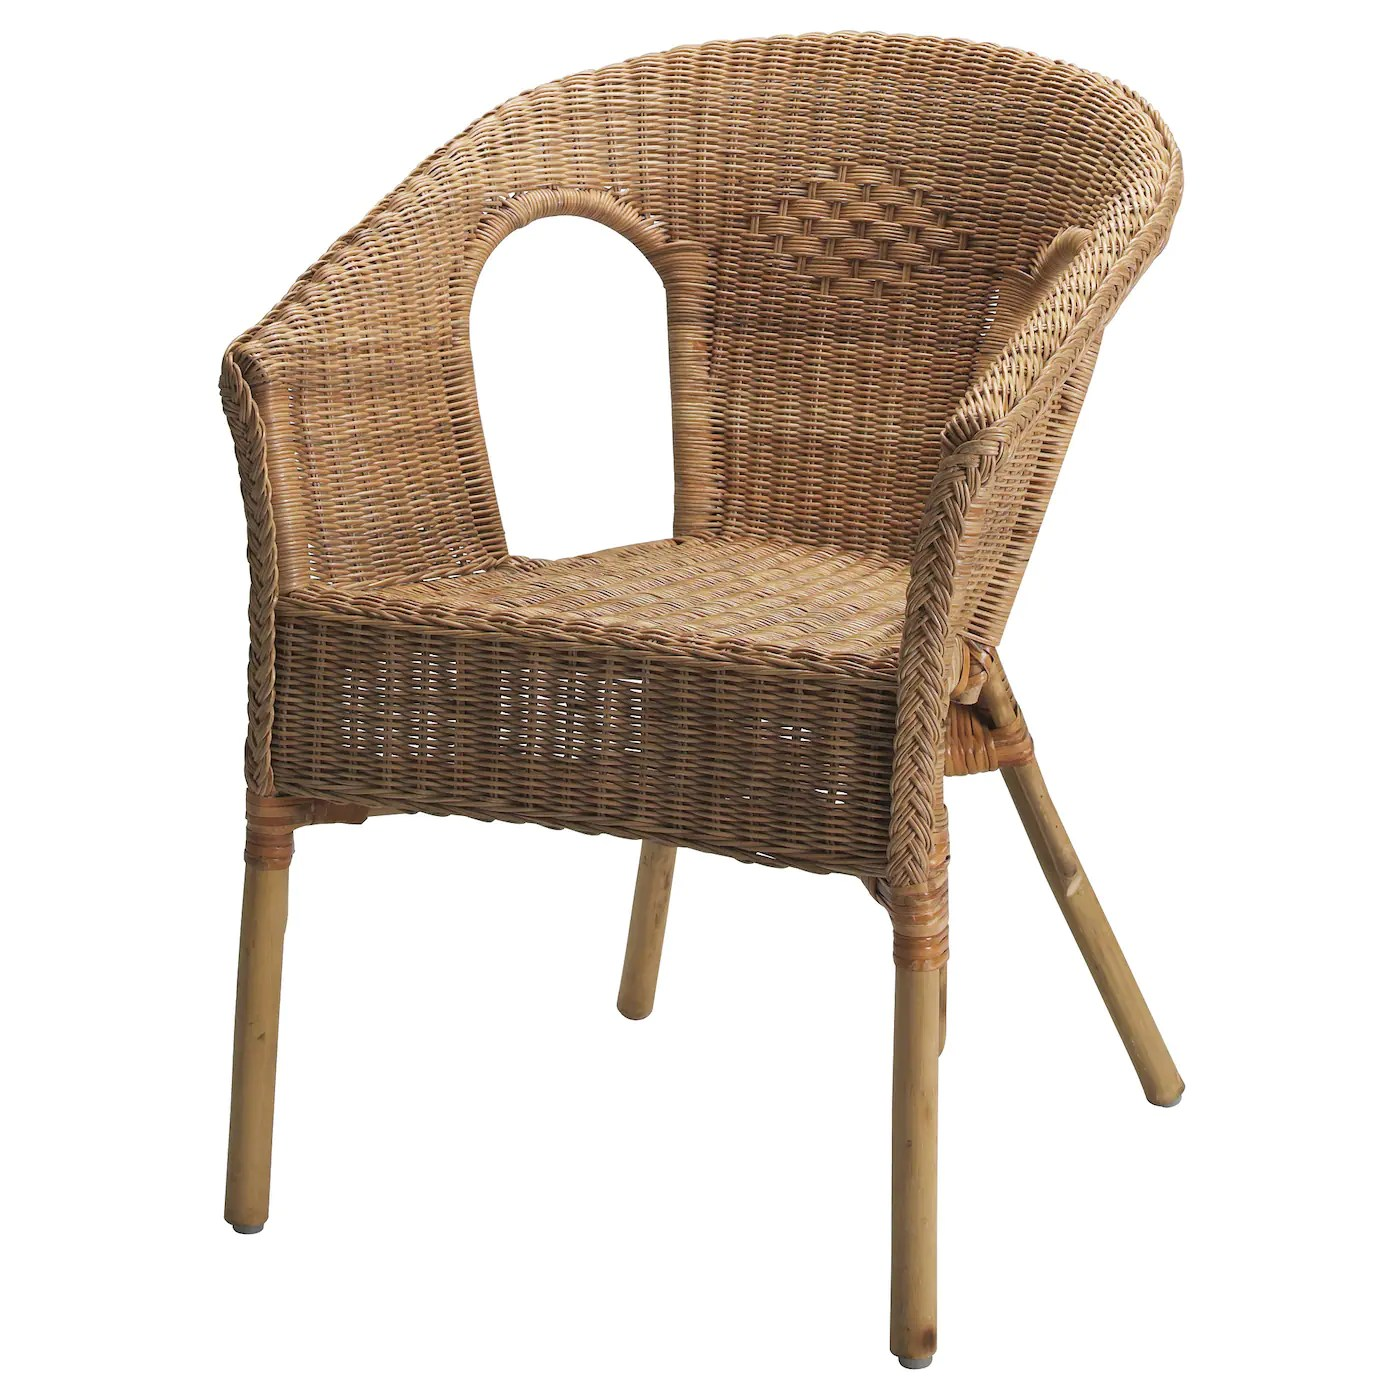 where to buy wicker chairs folding chair rentals nj rattan ikea agen handwoven each piece of furniture is unique